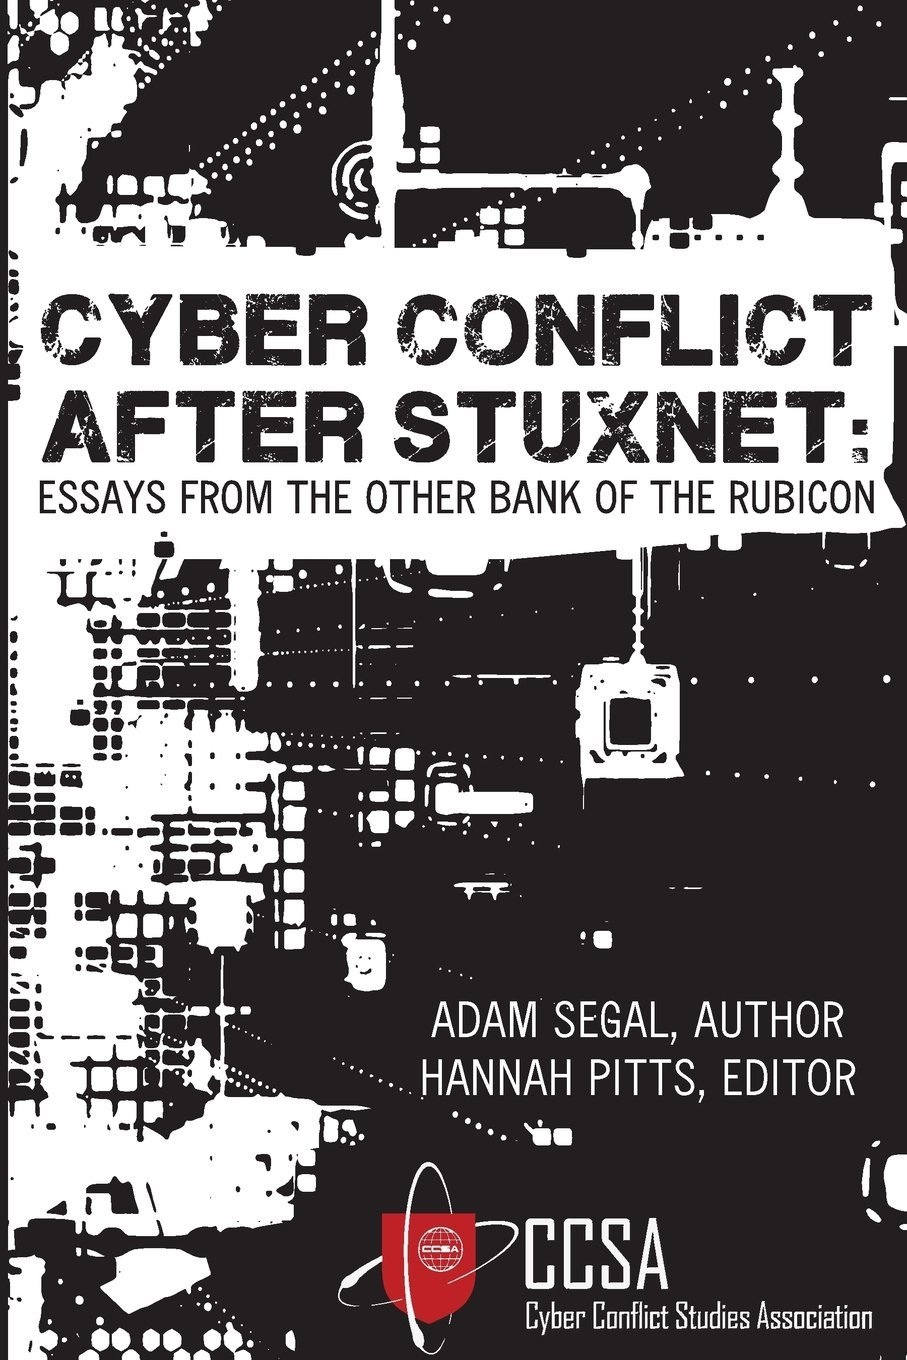 cyber conflict after stuxnet essays from the other bank of the cyber conflict after stuxnet essays from the other bank of the rubicon adam segal hannah pitts karl grindal 9780989327442 com books